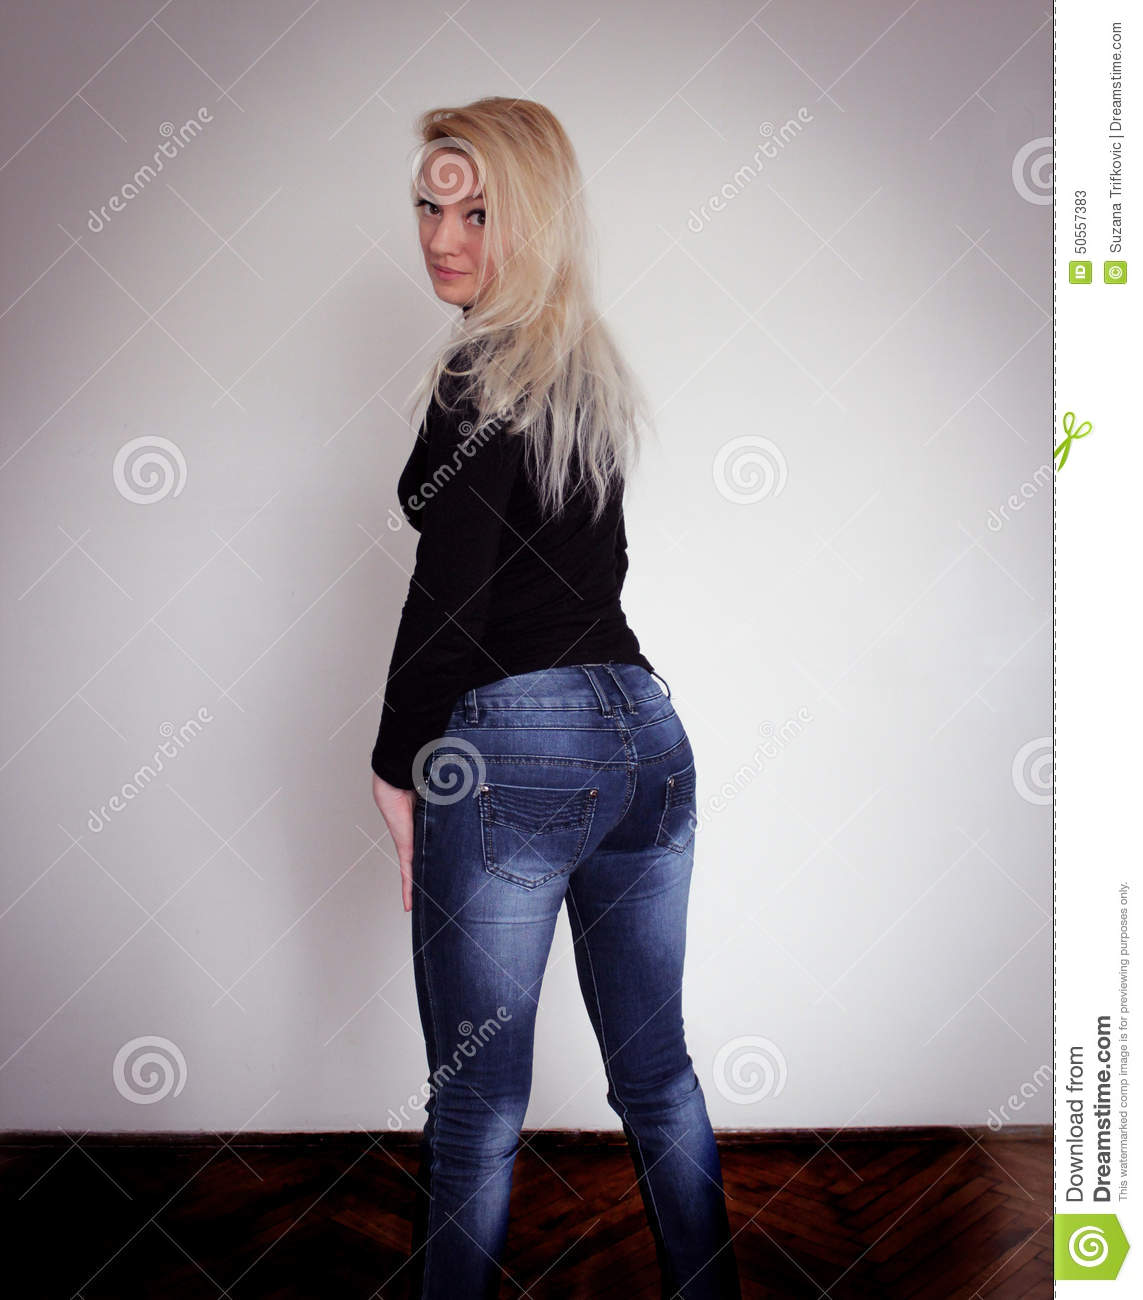 Jeans de port blonds image stock. Image du attrayant - 50557383 96193be96cb